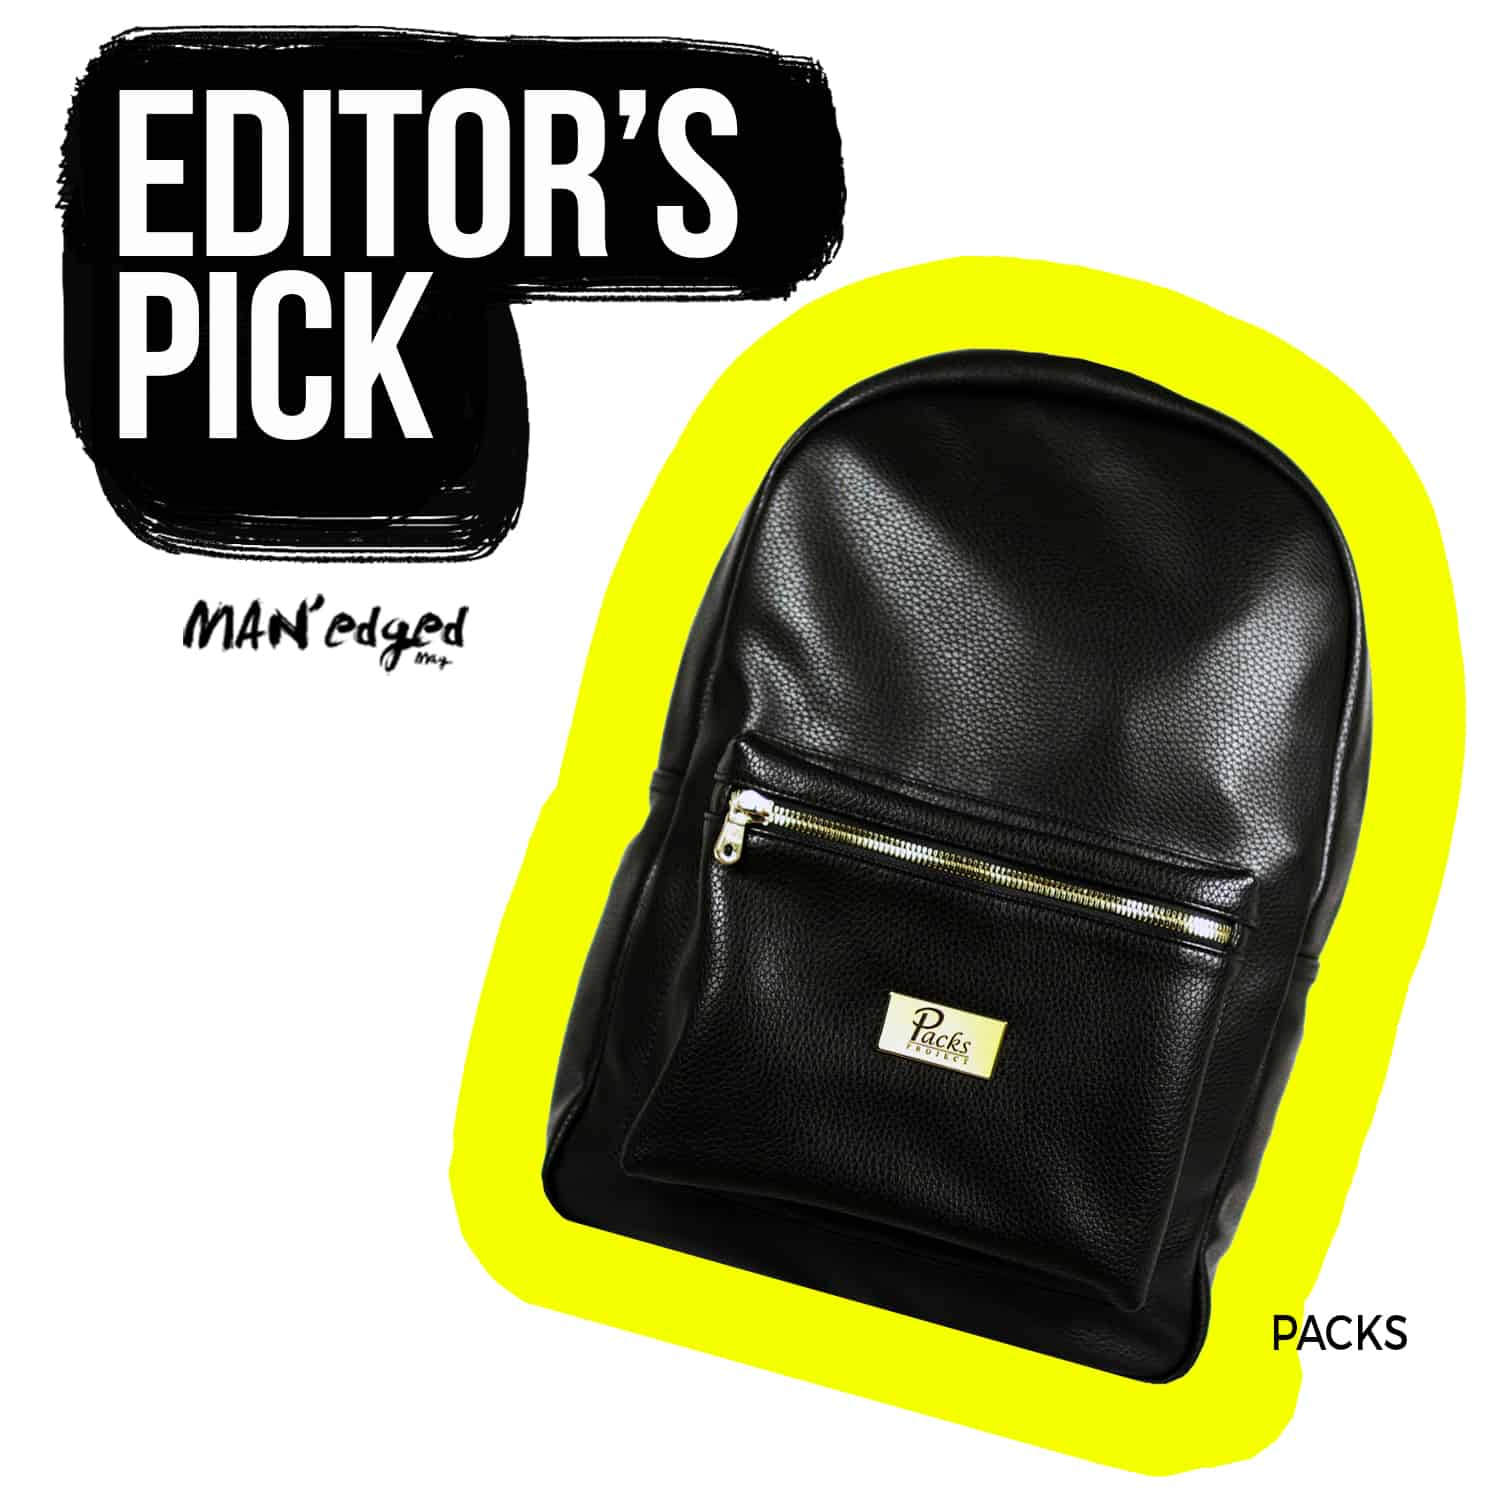 editor's pick black packs project men's bag backpack style